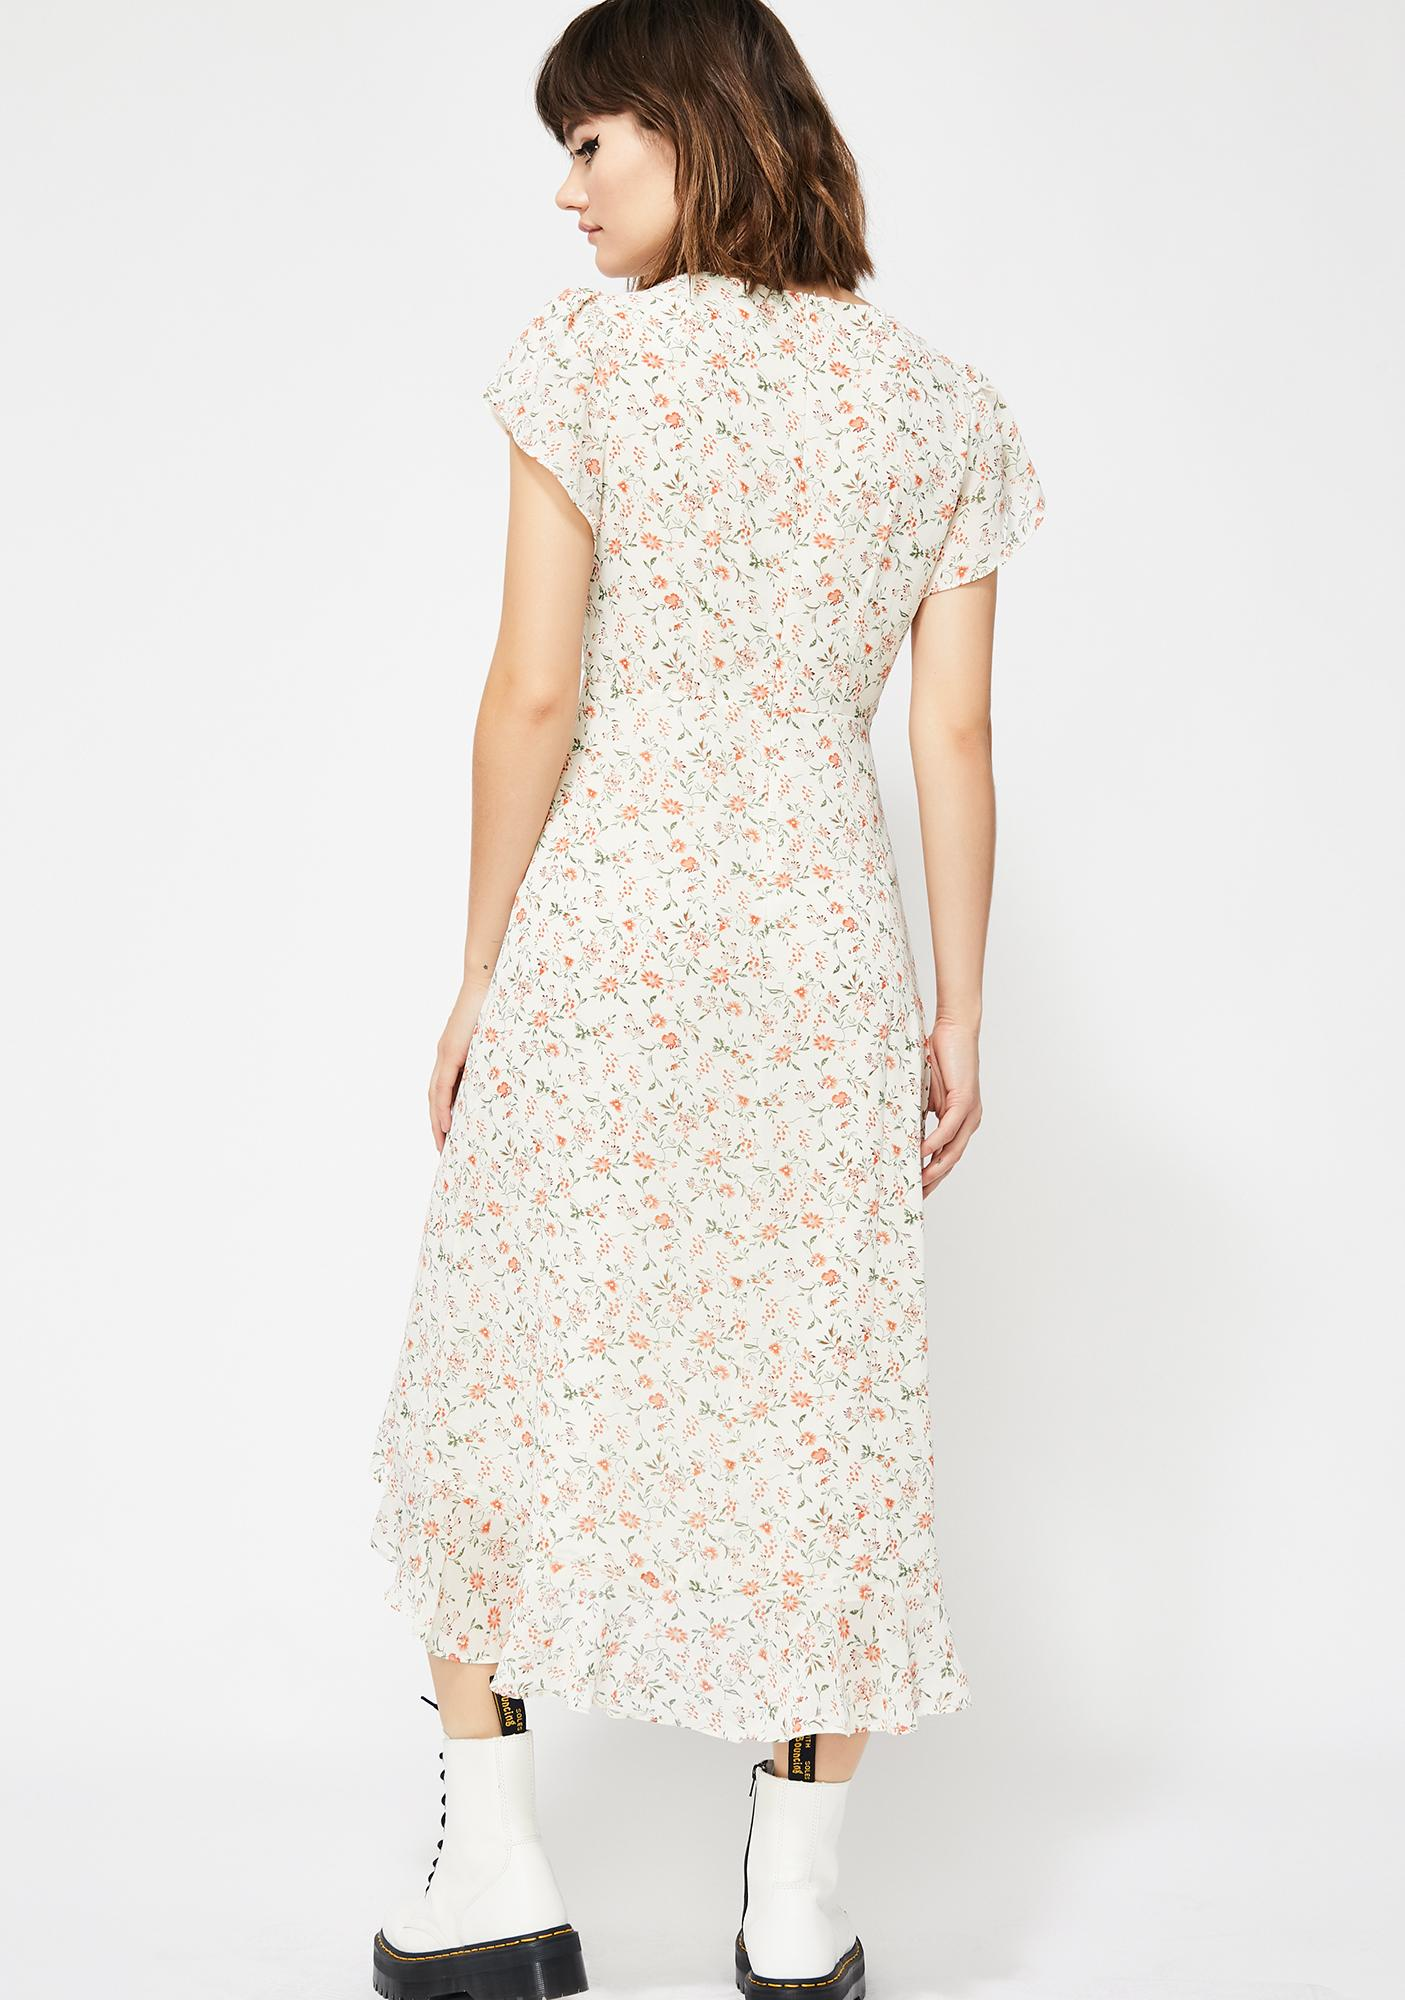 The Frill Of It Floral Dress